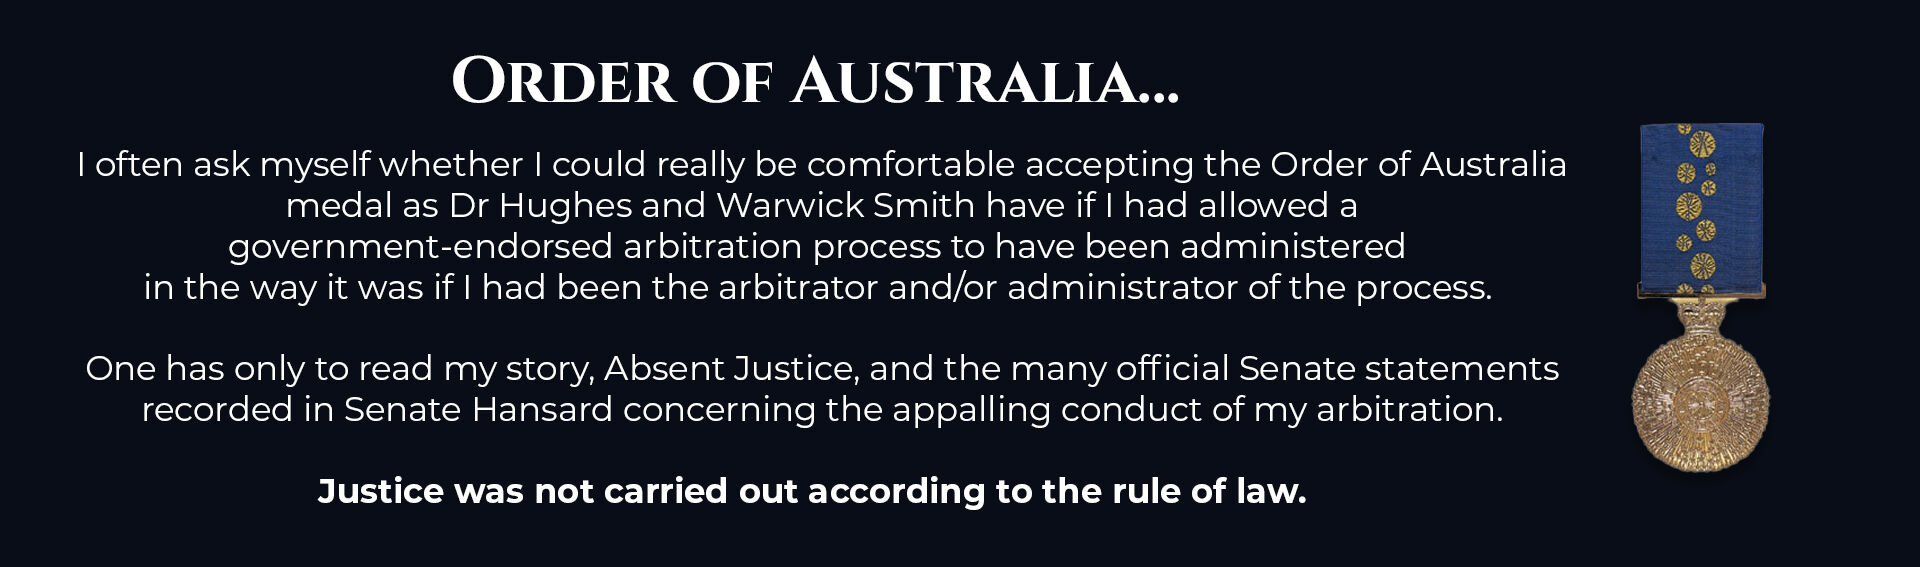 Absent Justice - Order of Australia